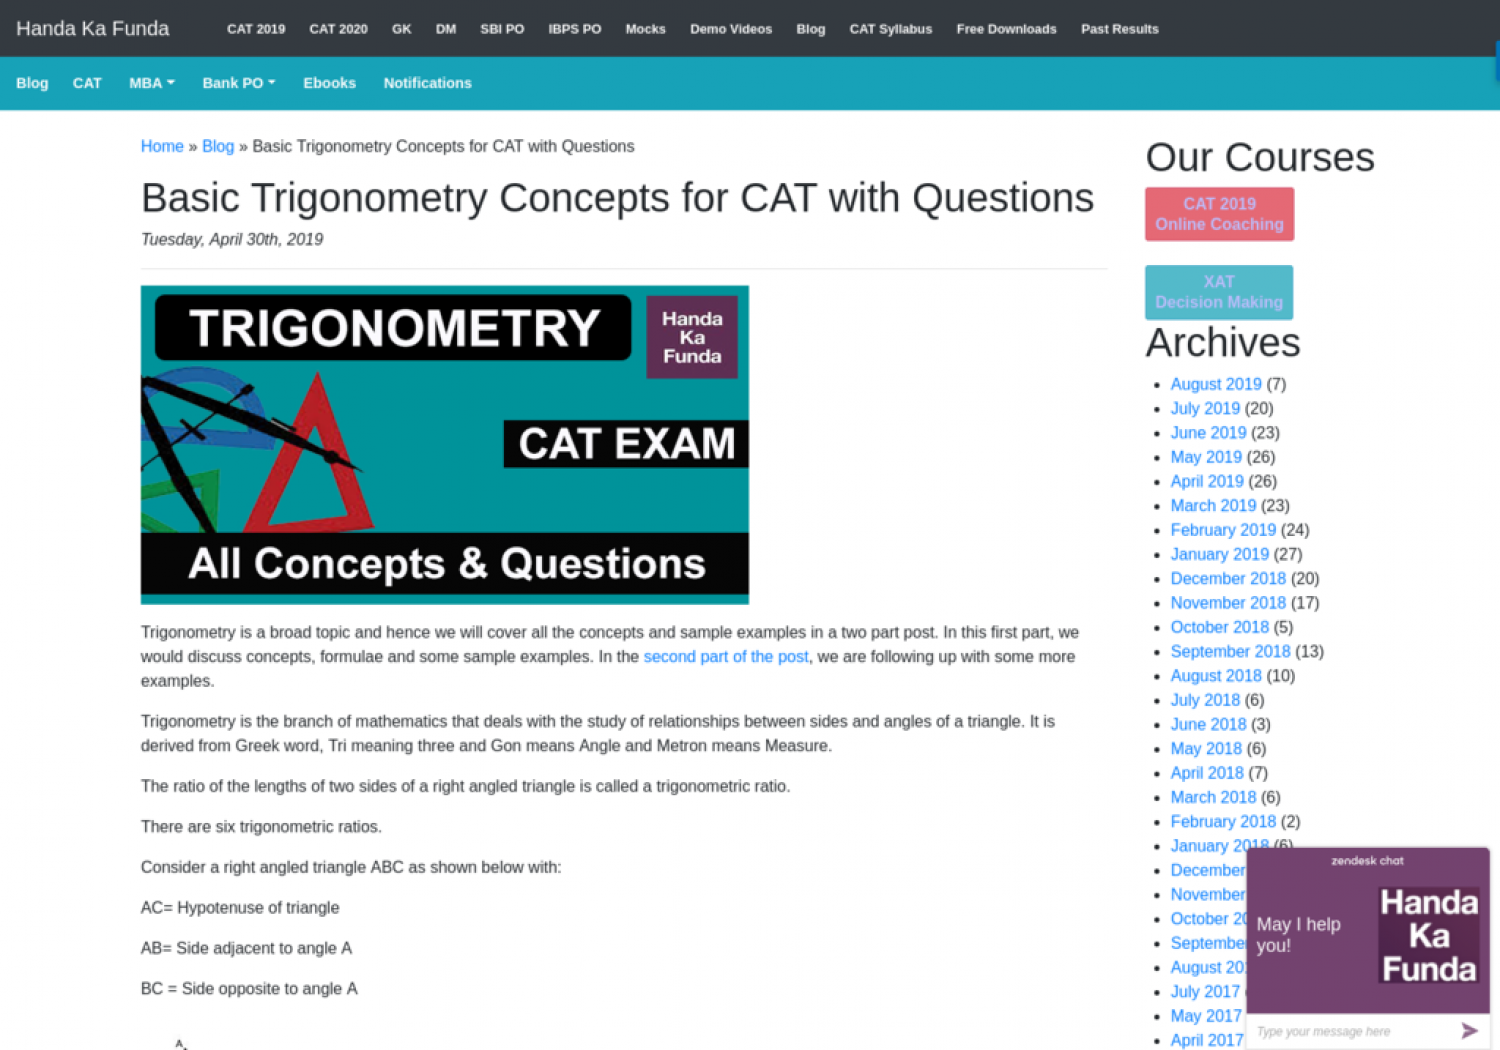 Basic Trigonometry Concepts for CAT with Questions Infographic